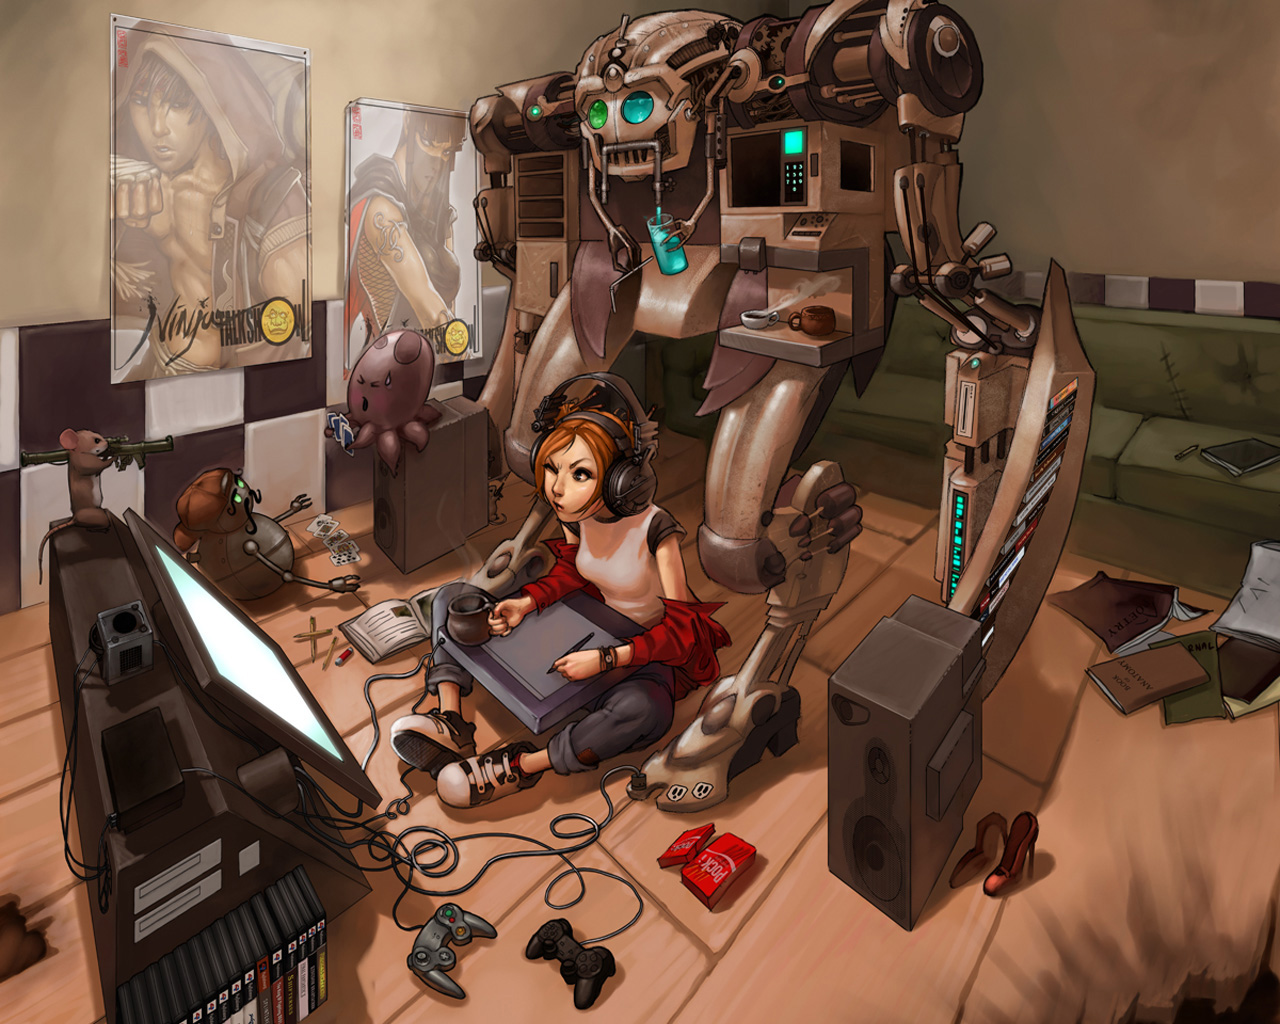 headphones women cards video games robots coffee people shoes books 1280x1024